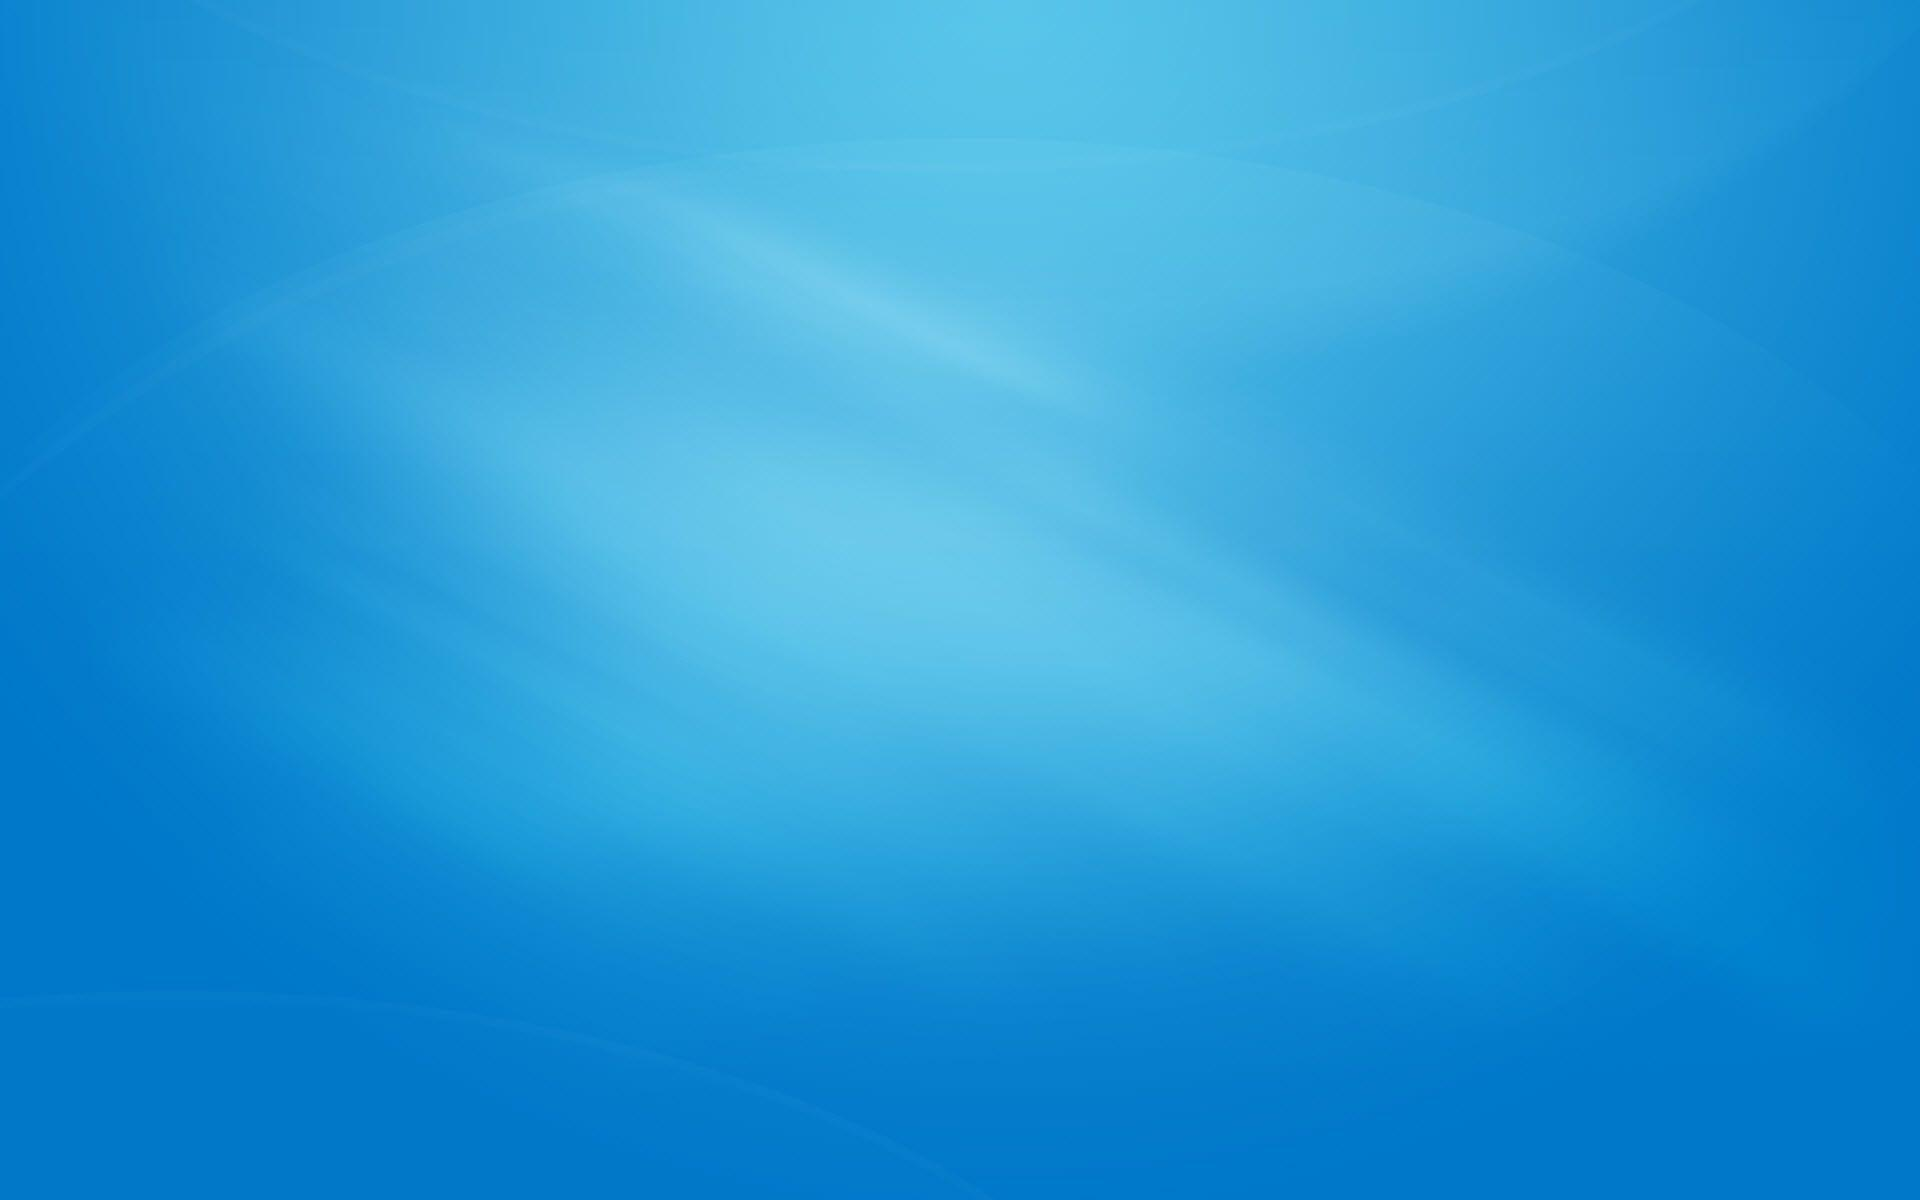 wallpapers for hd desktop background blue